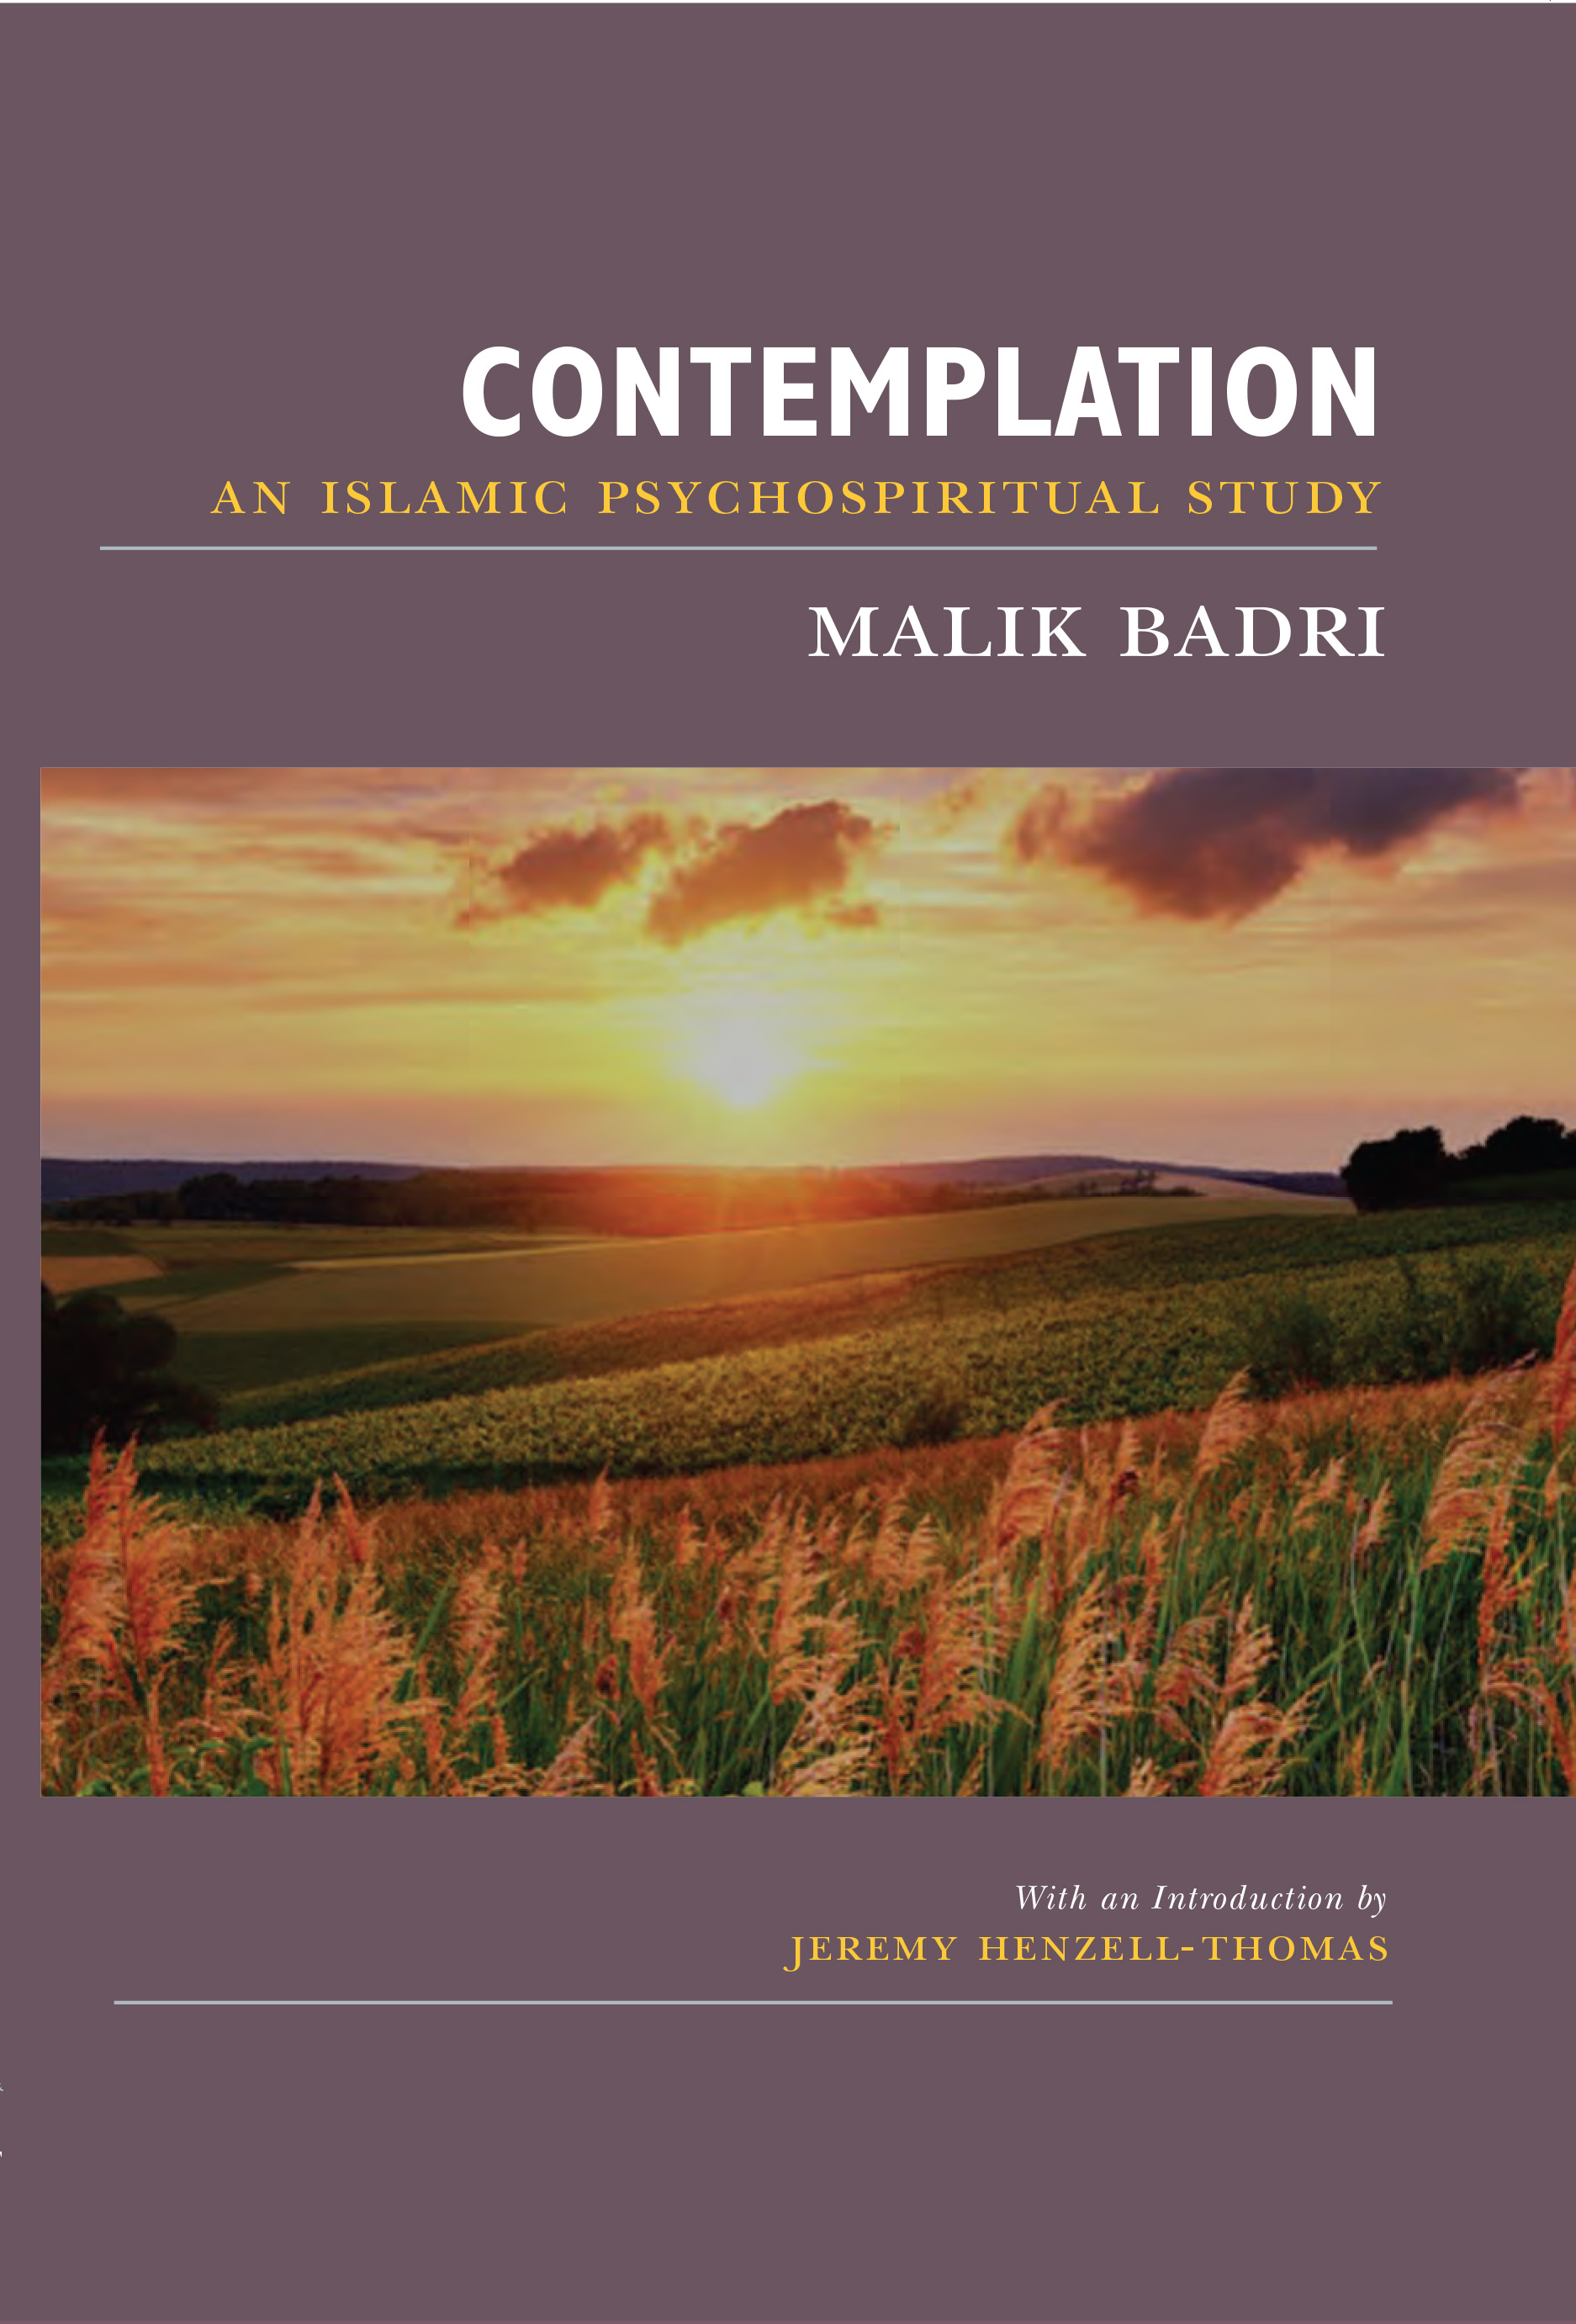 Contemplation: An Islamic Psychospiritual Study (New Edition)